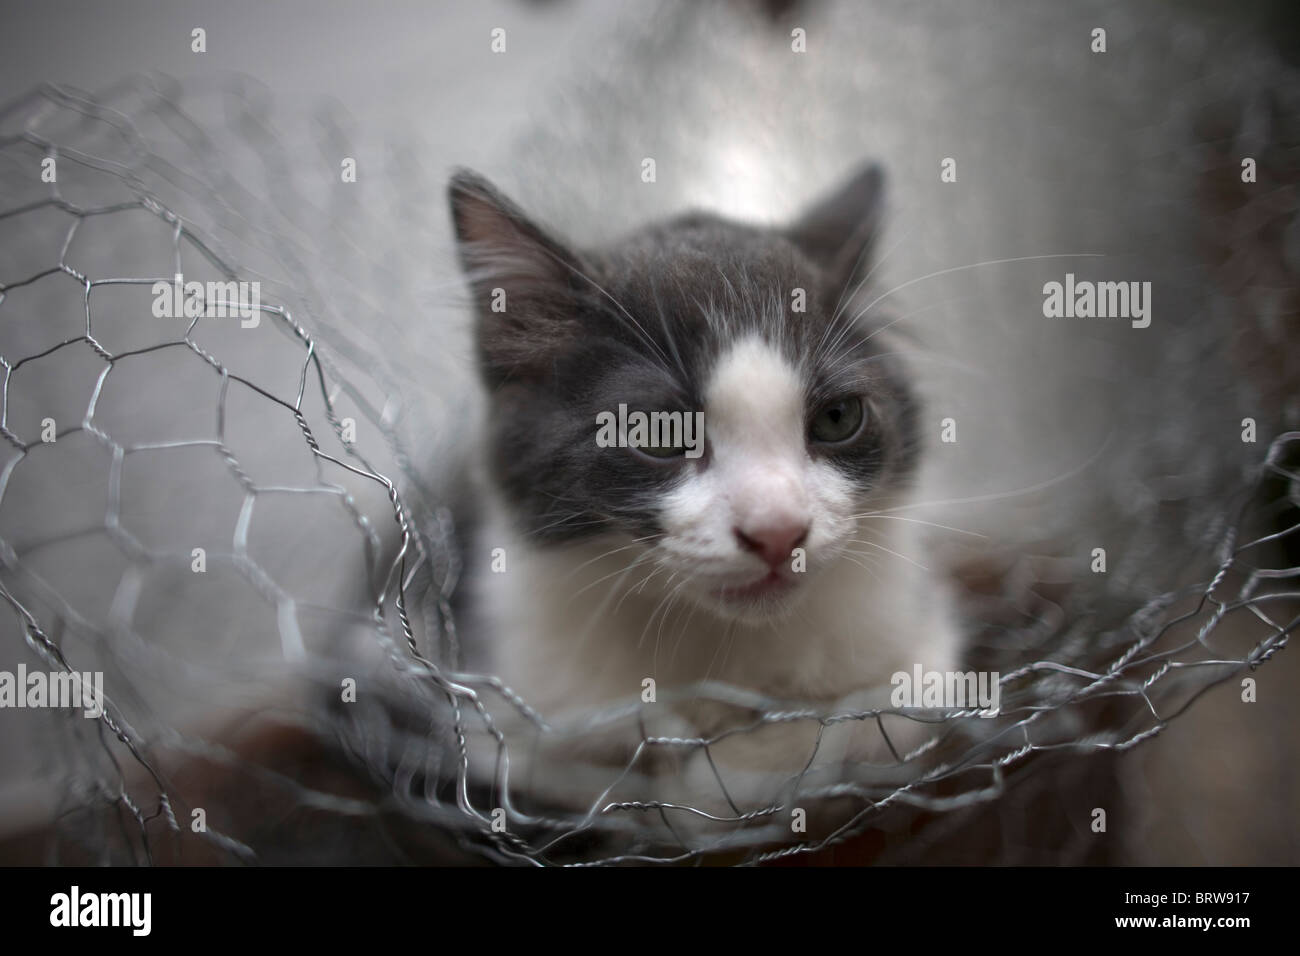 Adorable Baby Kittens Outdoors In Stock Photos & Adorable Baby ...